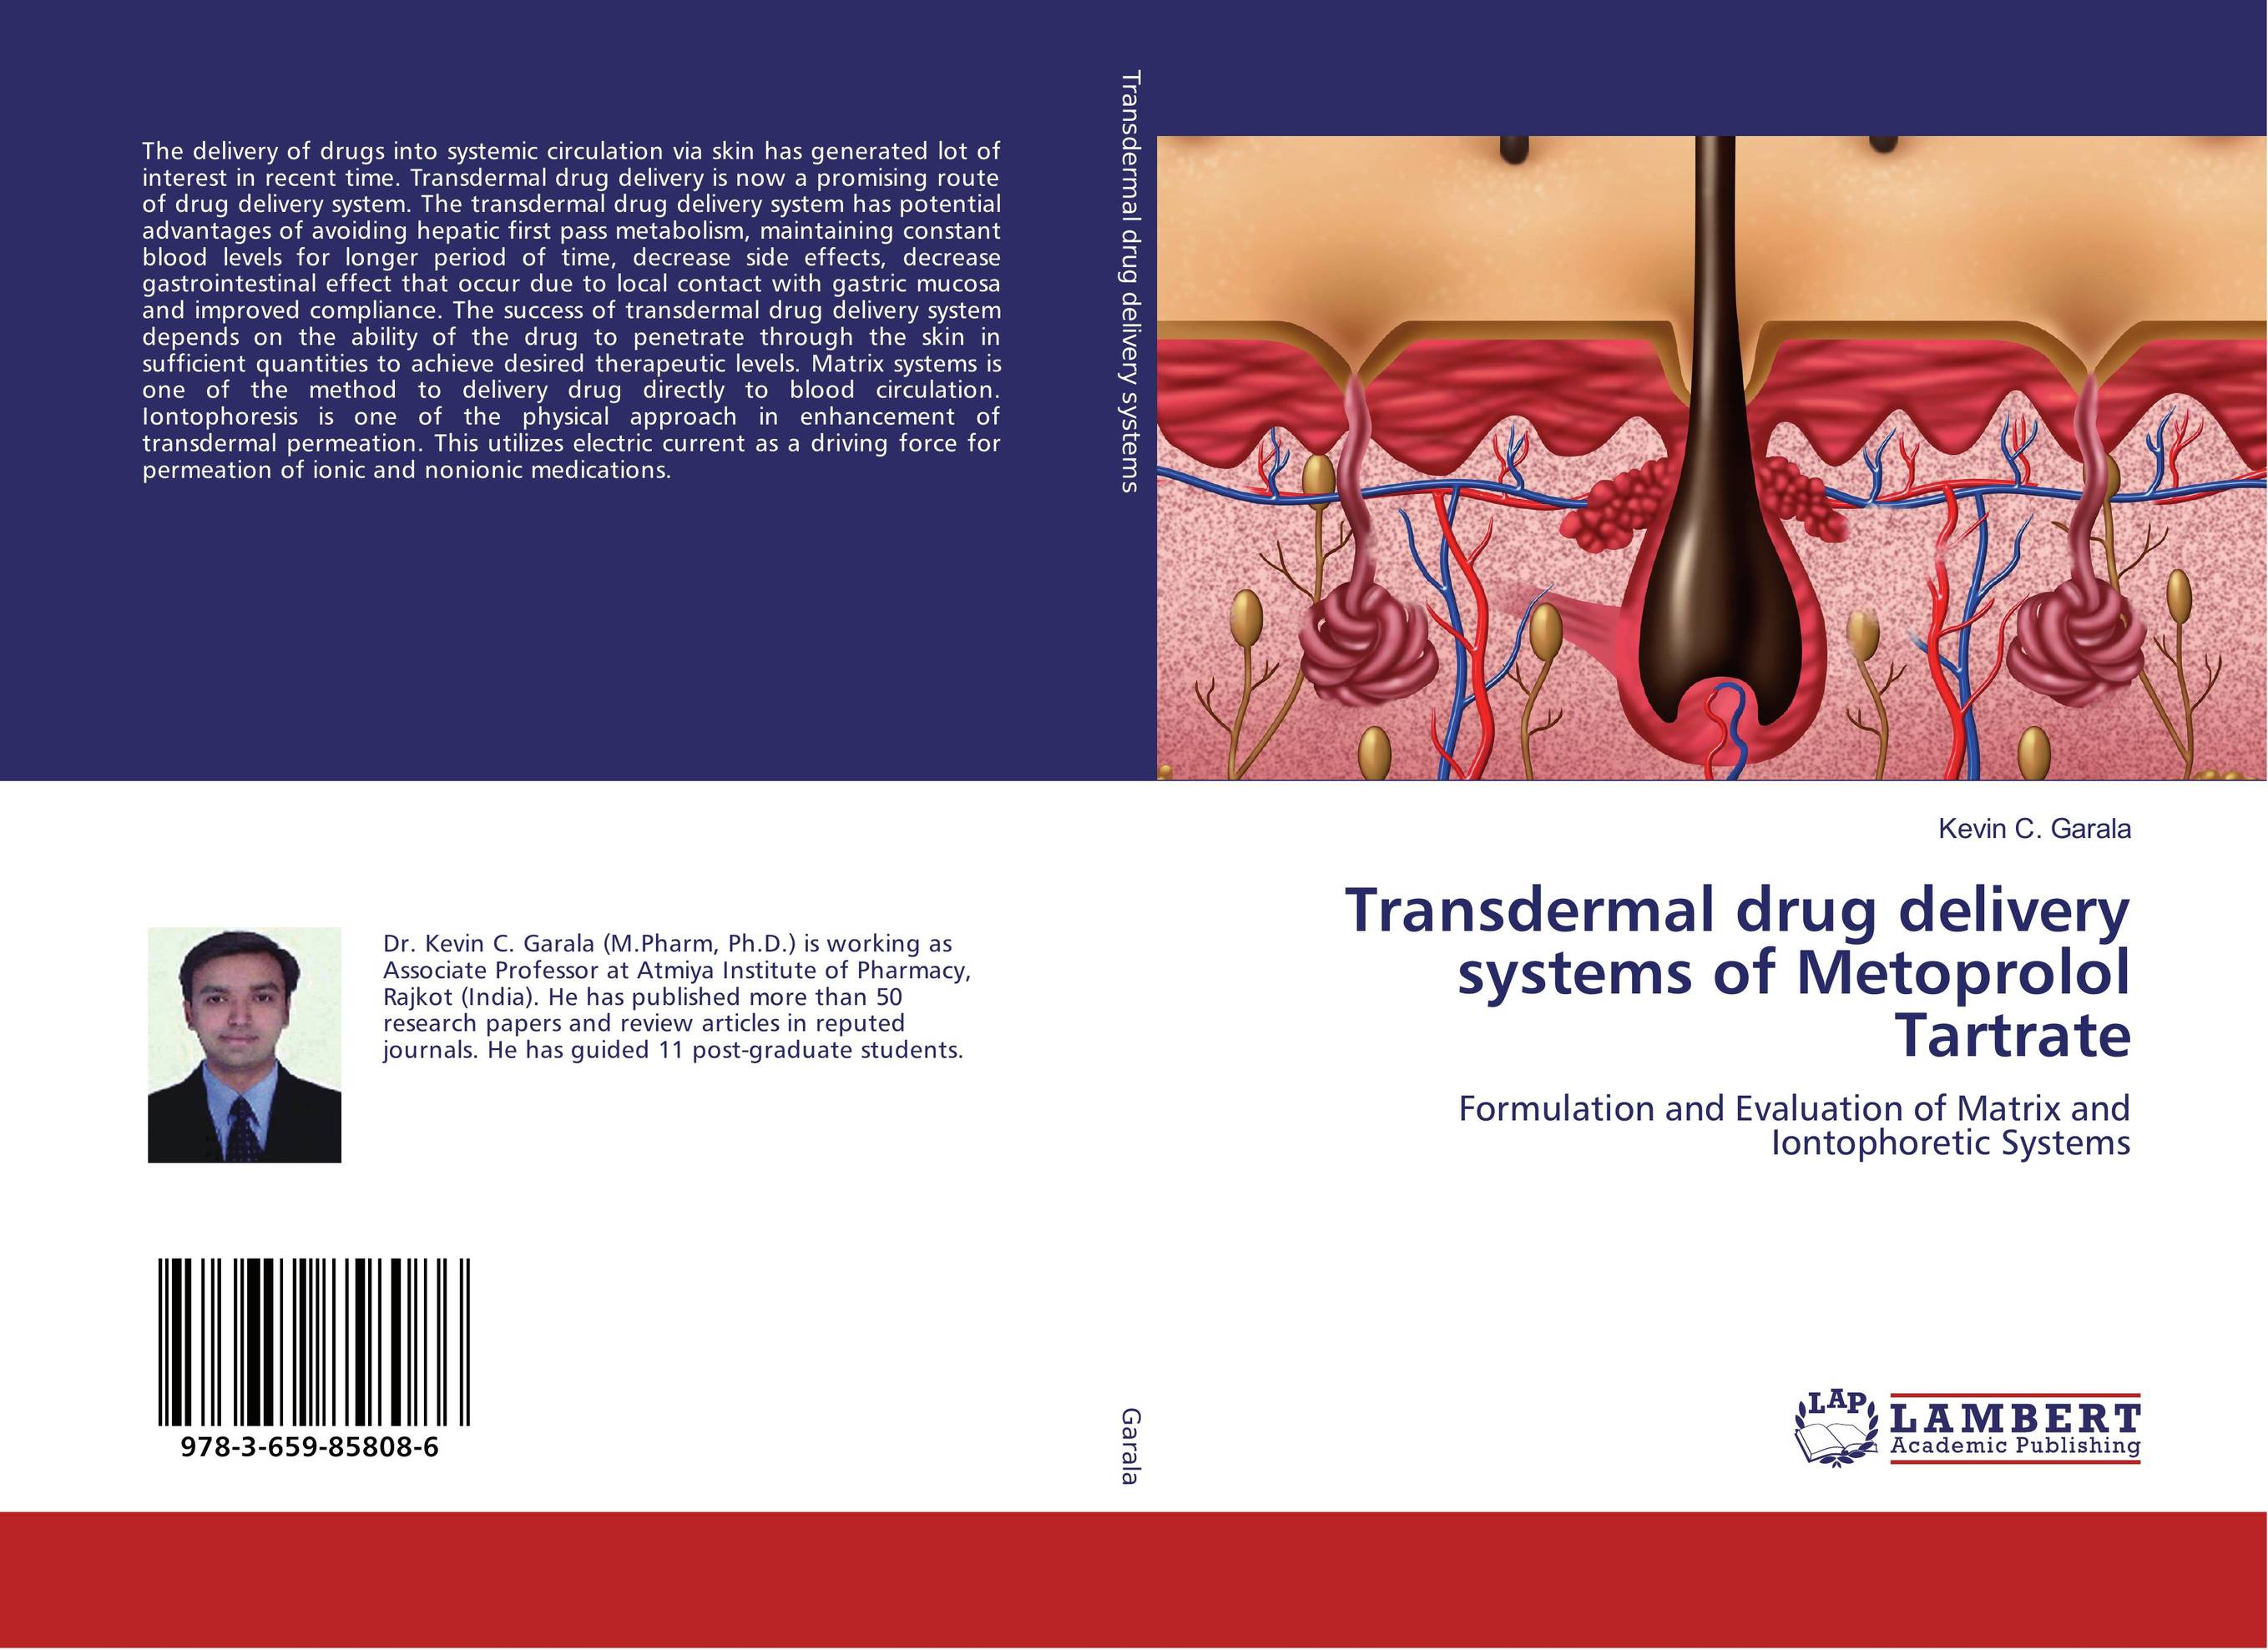 Transdermal drug delivery systems of Metoprolol Tartrate abhishek kumar sah sunil k jain and manmohan singh jangdey a recent approaches in topical drug delivery system